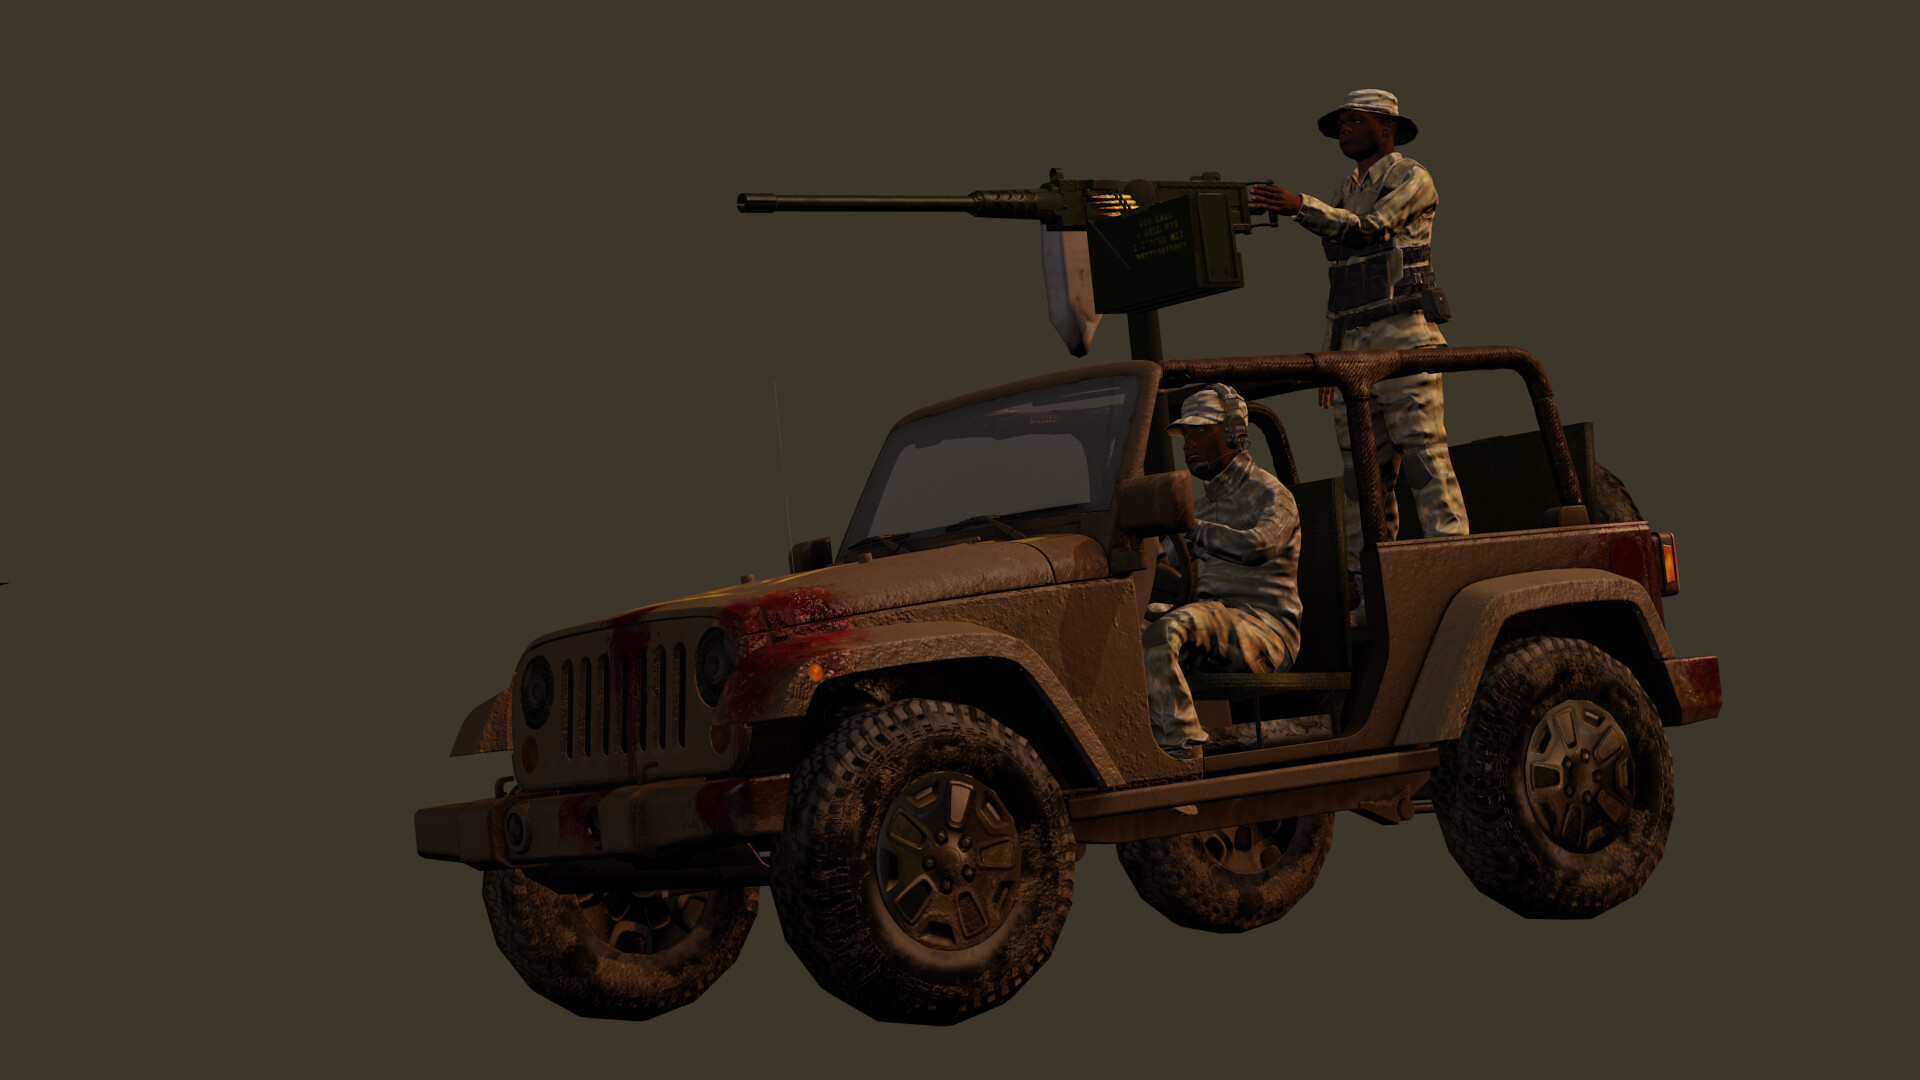 Jeep textured with substance, model courtesy of my pal Chris Plush, of CGMasters.net and soldiers (in need of weight painting) from Fuse.  .50 cal for free on internet, also textures in Painter.